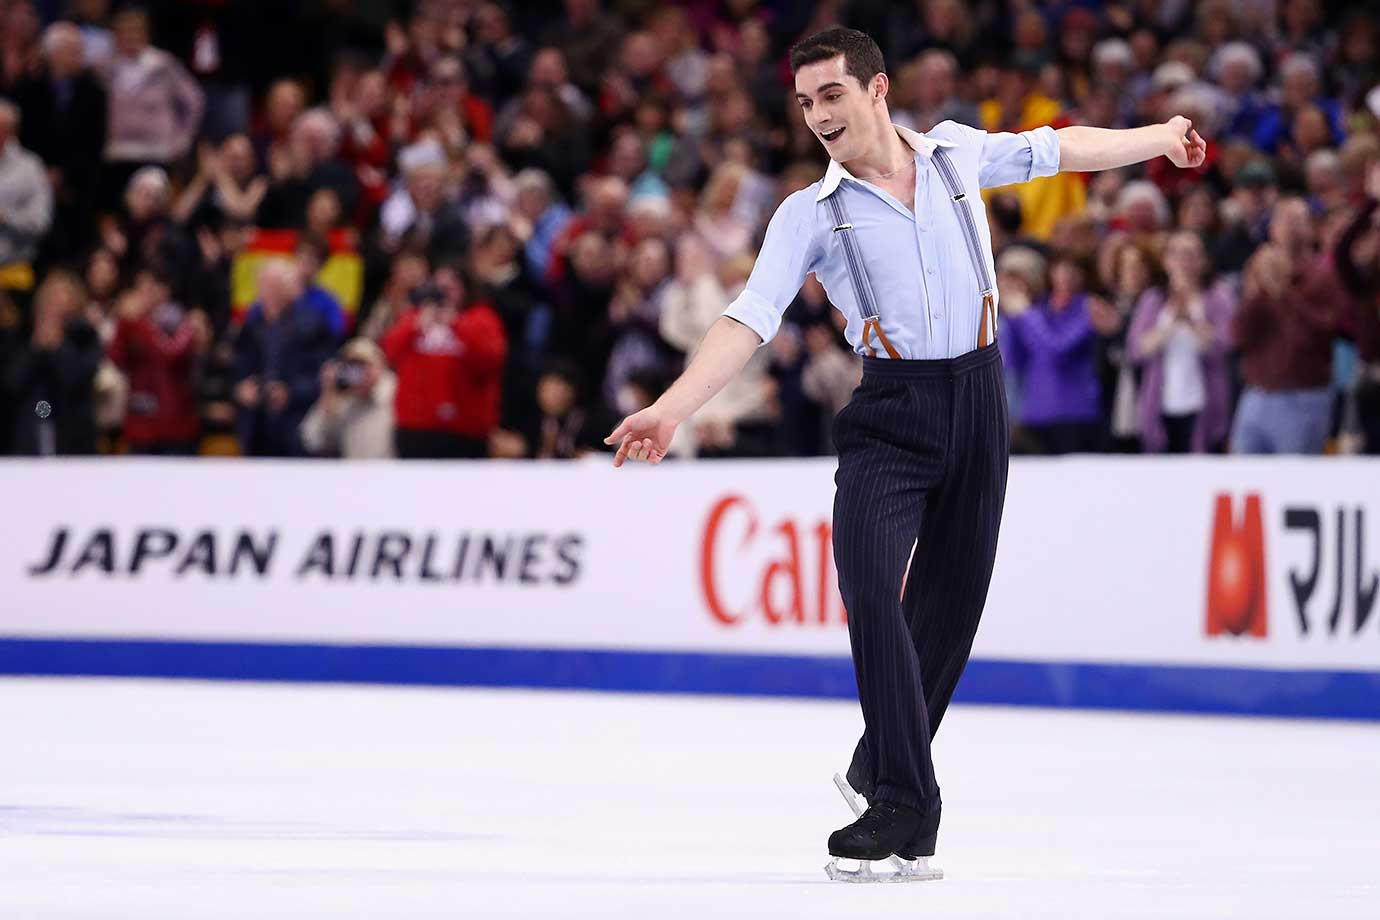 Javier Fernandez of Spain defended his world title by overcoming a 12. point deficit with a 216.41 in his free skate to finish with a 314.93 total.